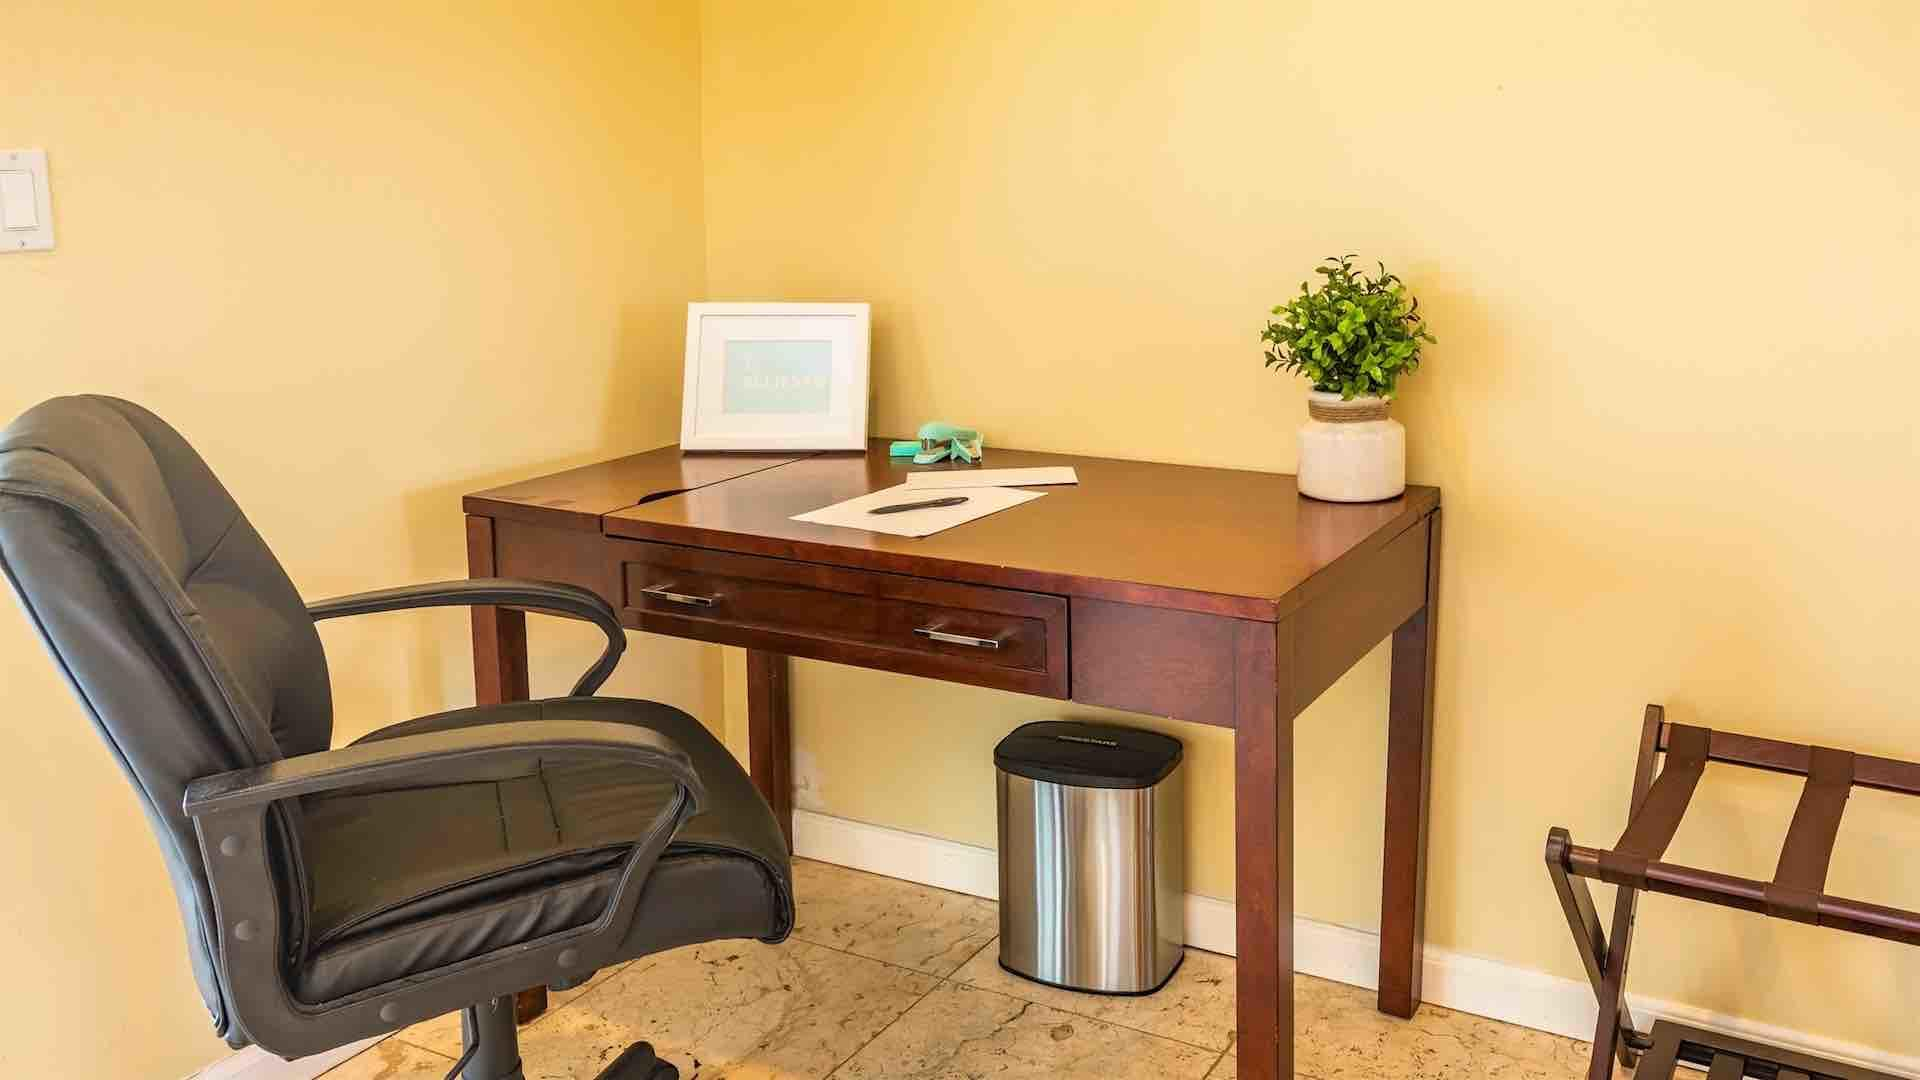 The second master suite has a home office with a desk and chair...